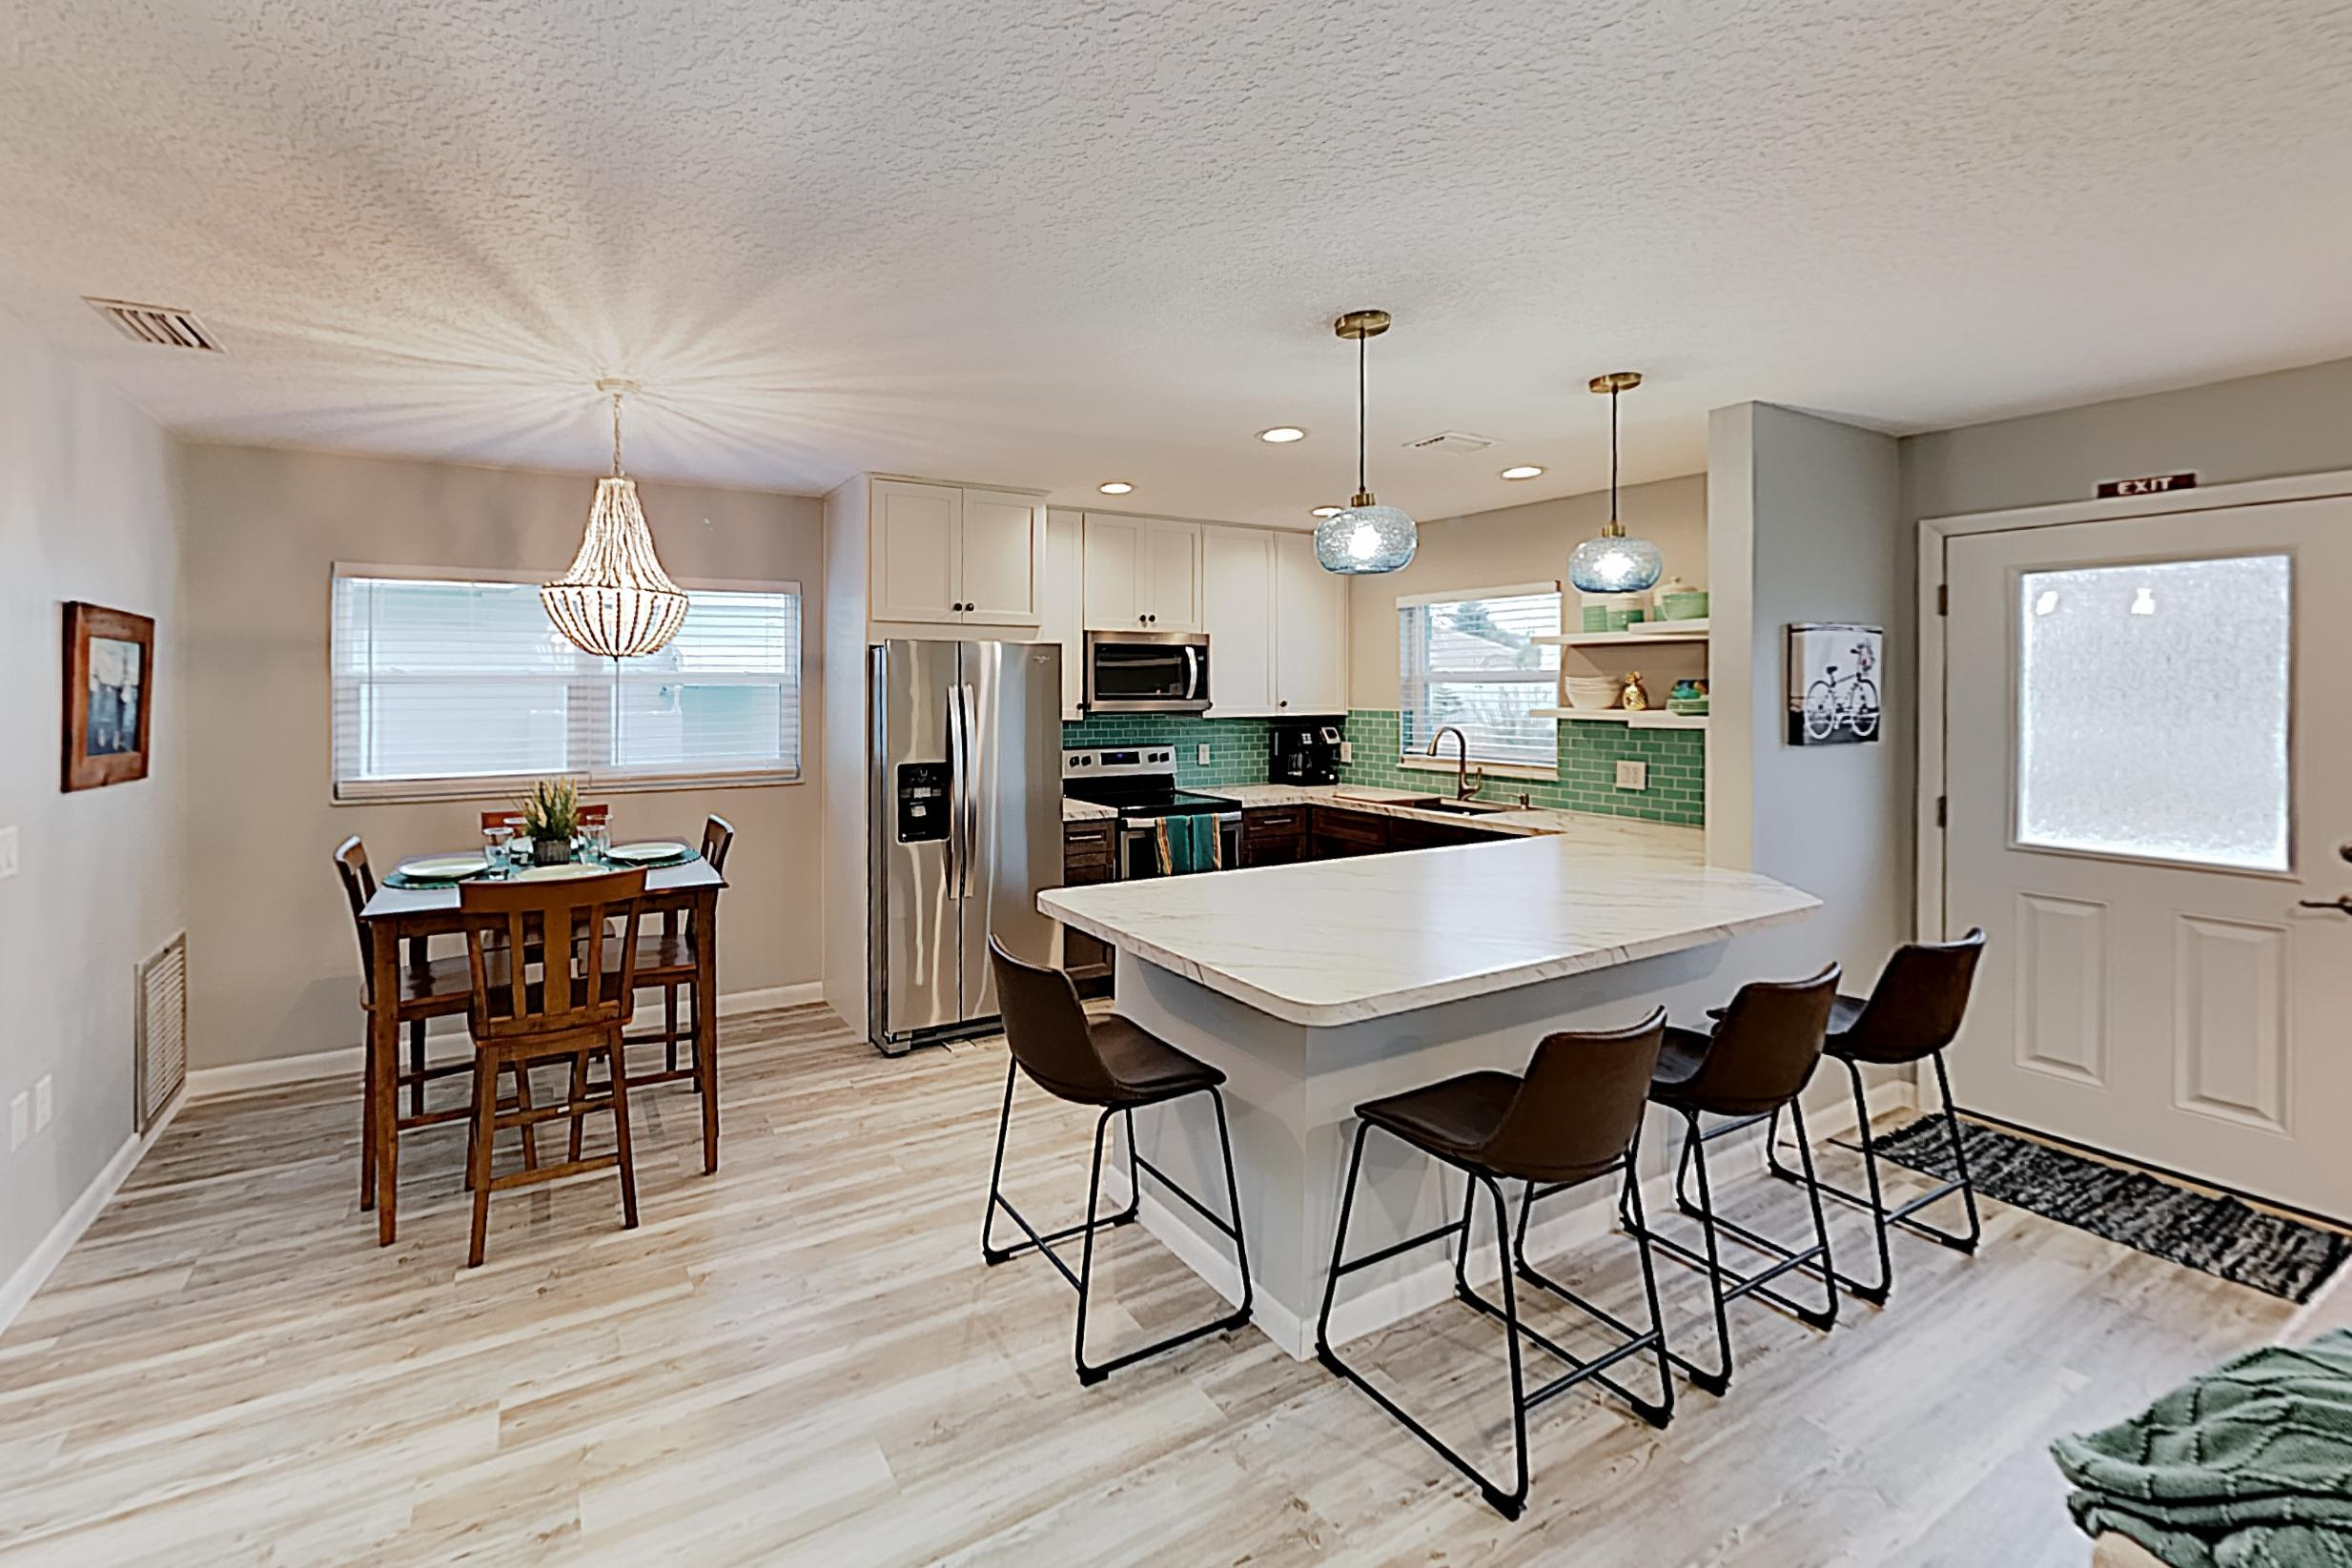 Whip up tasty meals in the renovated kitchen, appointed with a full suite of stainless steel appliances.